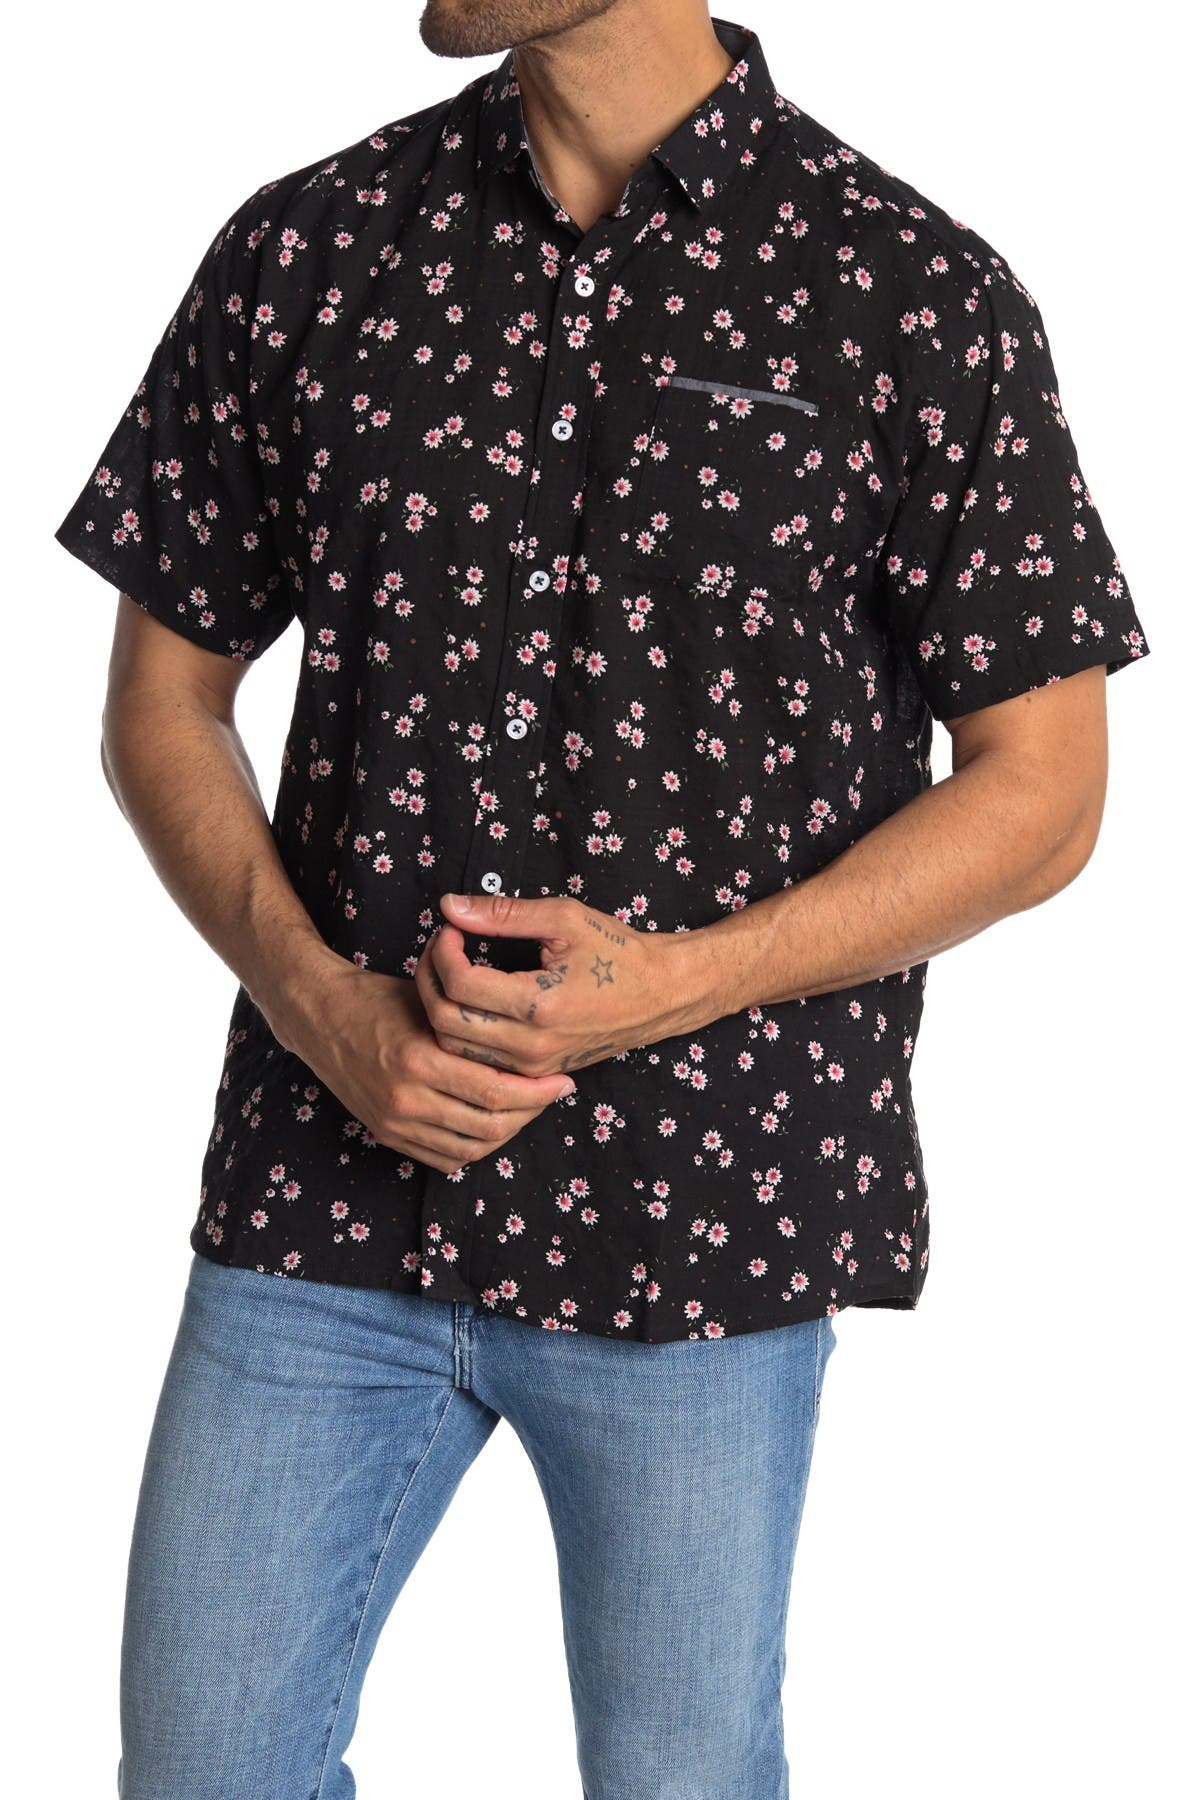 Image of IMPATIENT WOLVES Broken Night Printed Button Down Shirt